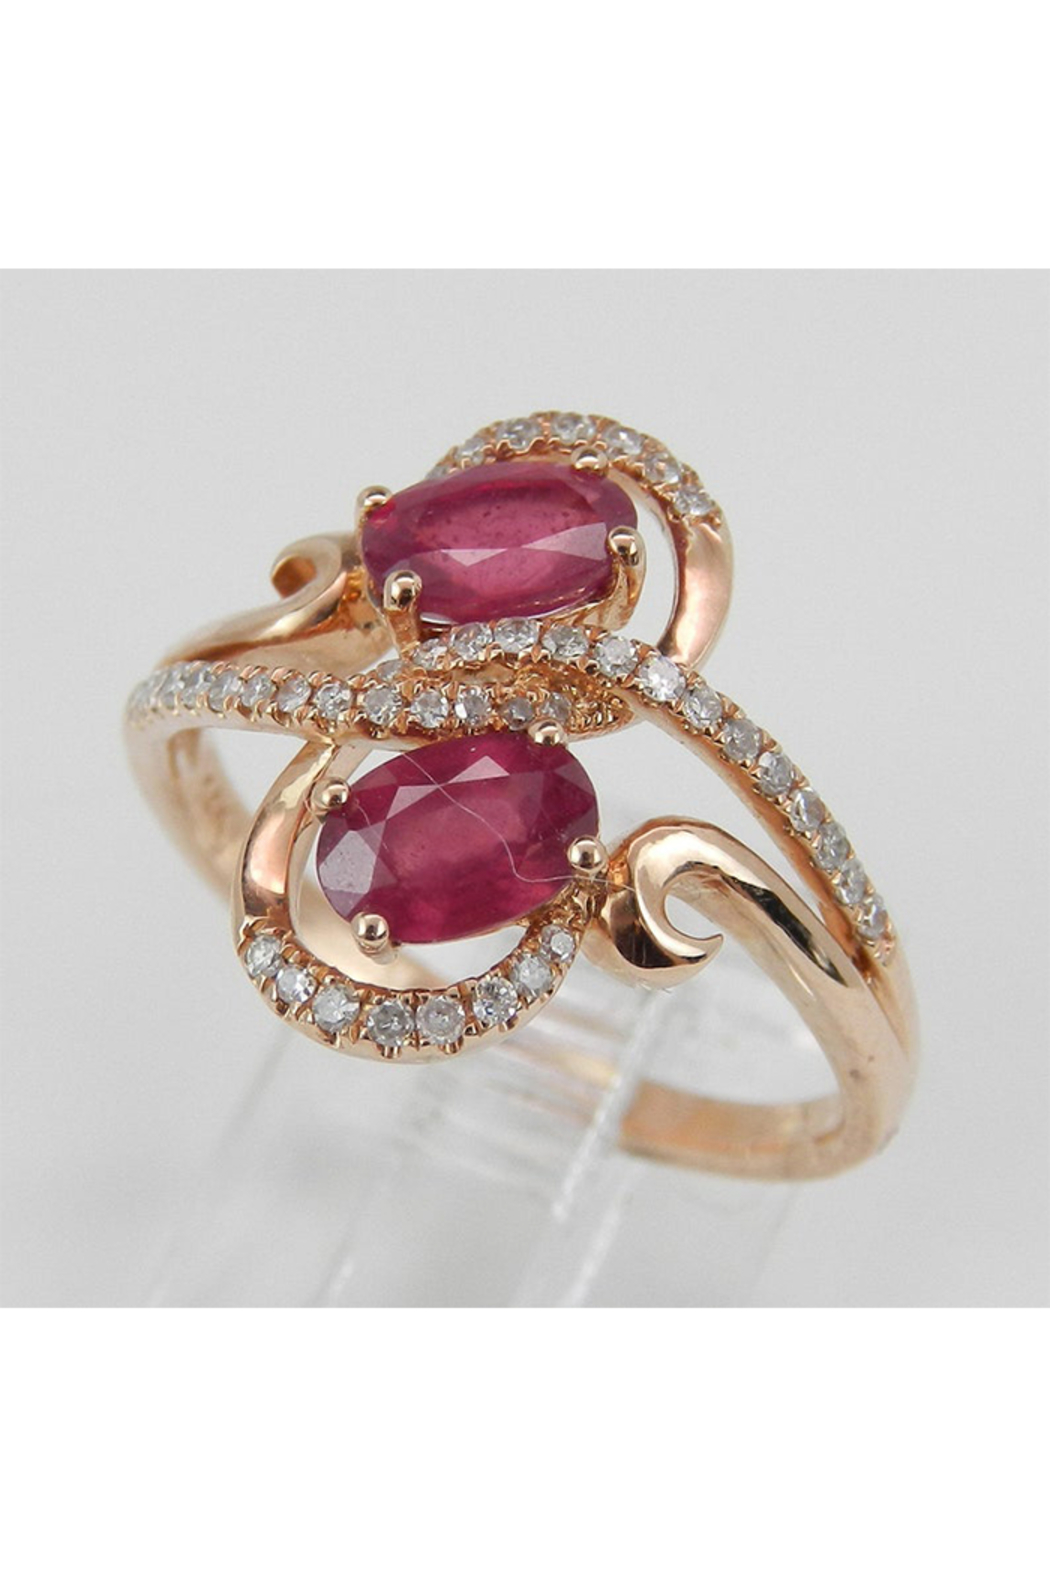 Margolin & Co 14K Rose Gold 1.40 ct Diamond and Ruby Cocktail Ring, Two Stone Right Hand Ring, Size 7, July Gemstone - Side Cropped Image